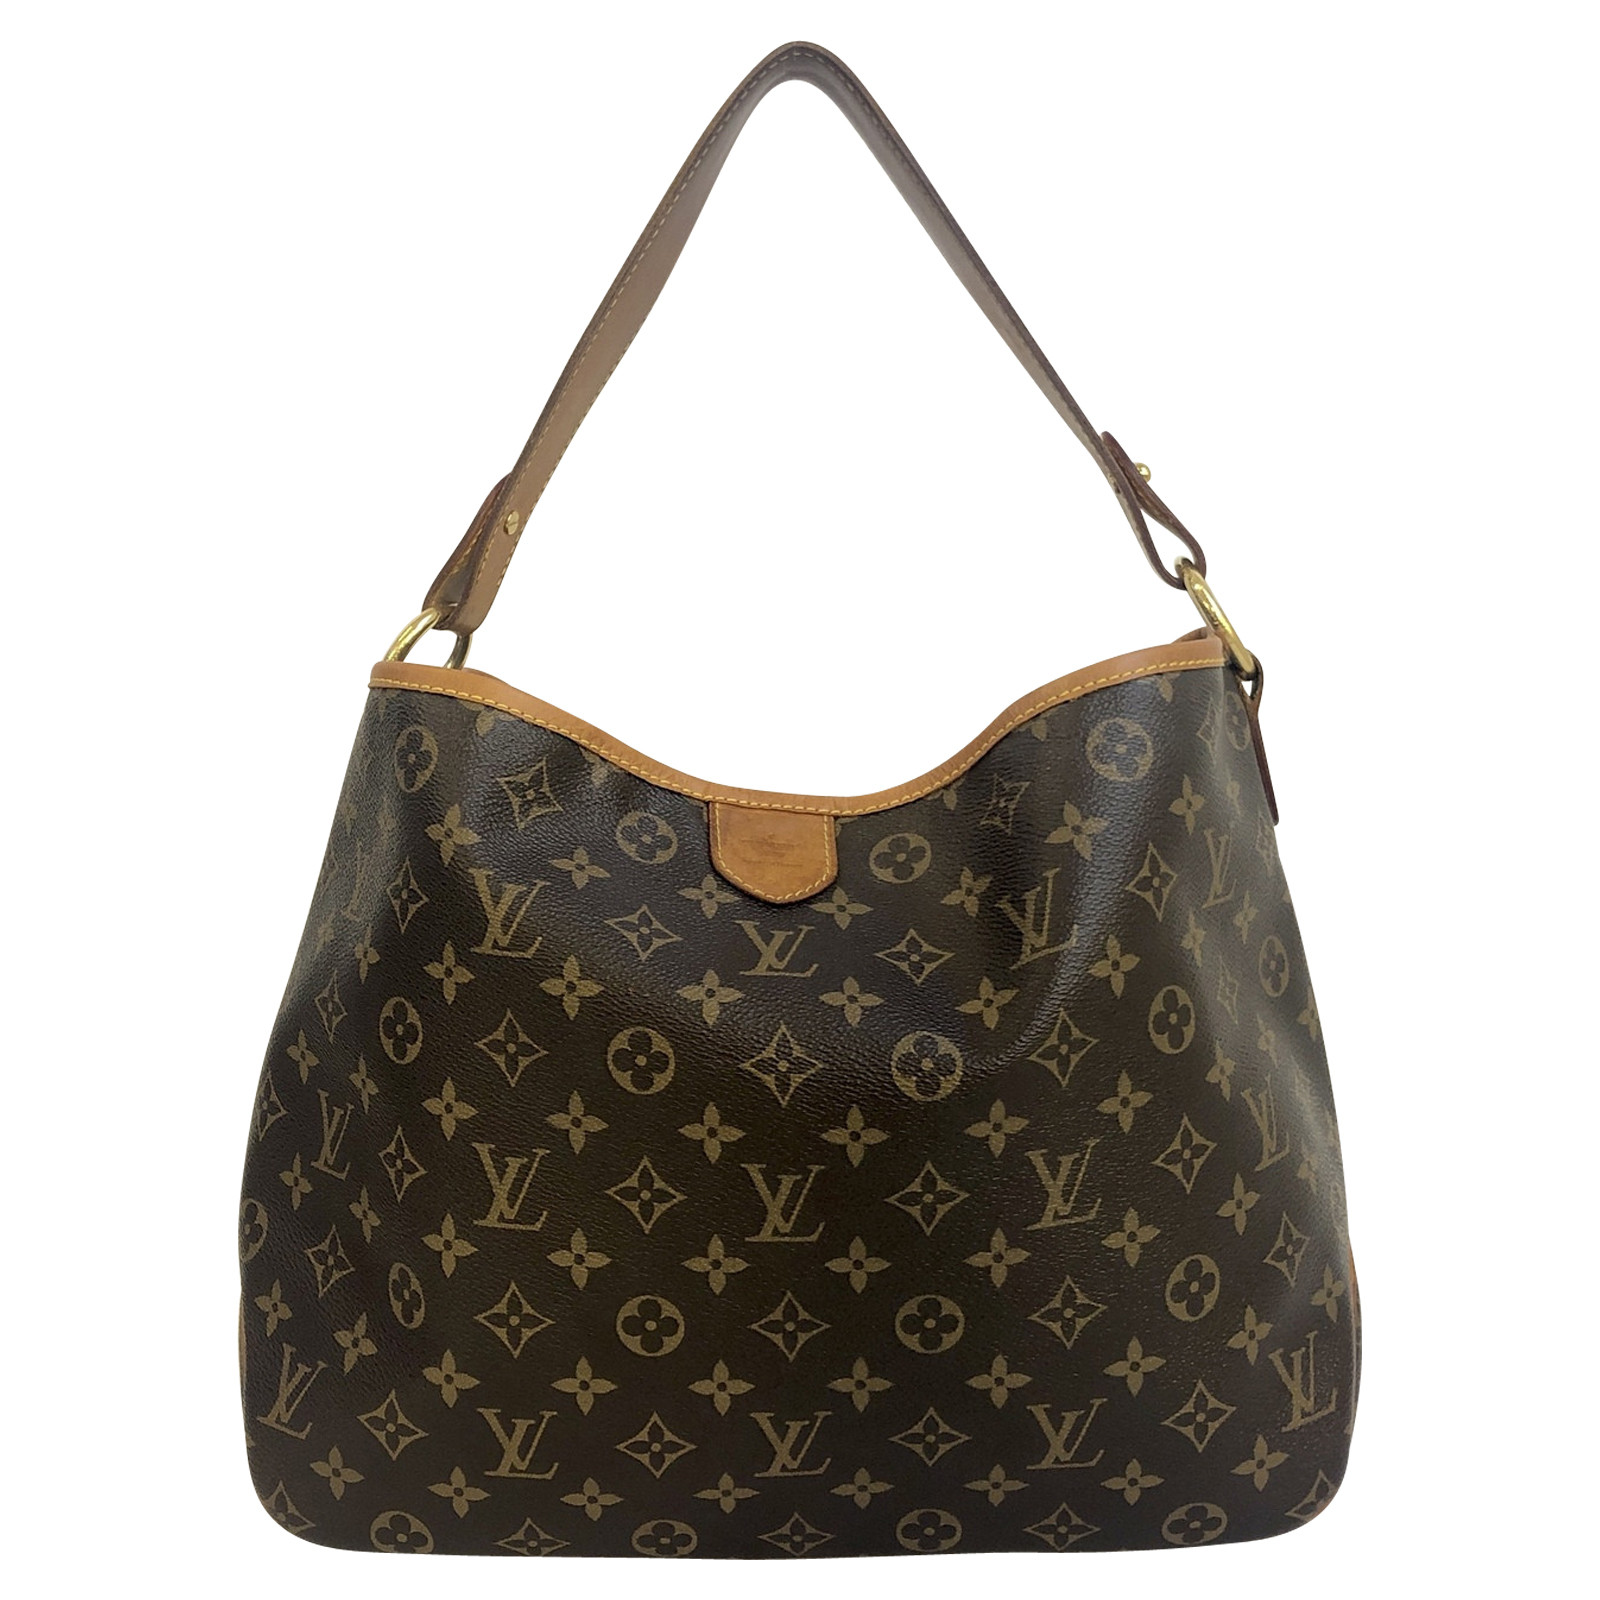 Louis Vuitton Delightful Canvas in Brown   Second Hand Louis ...